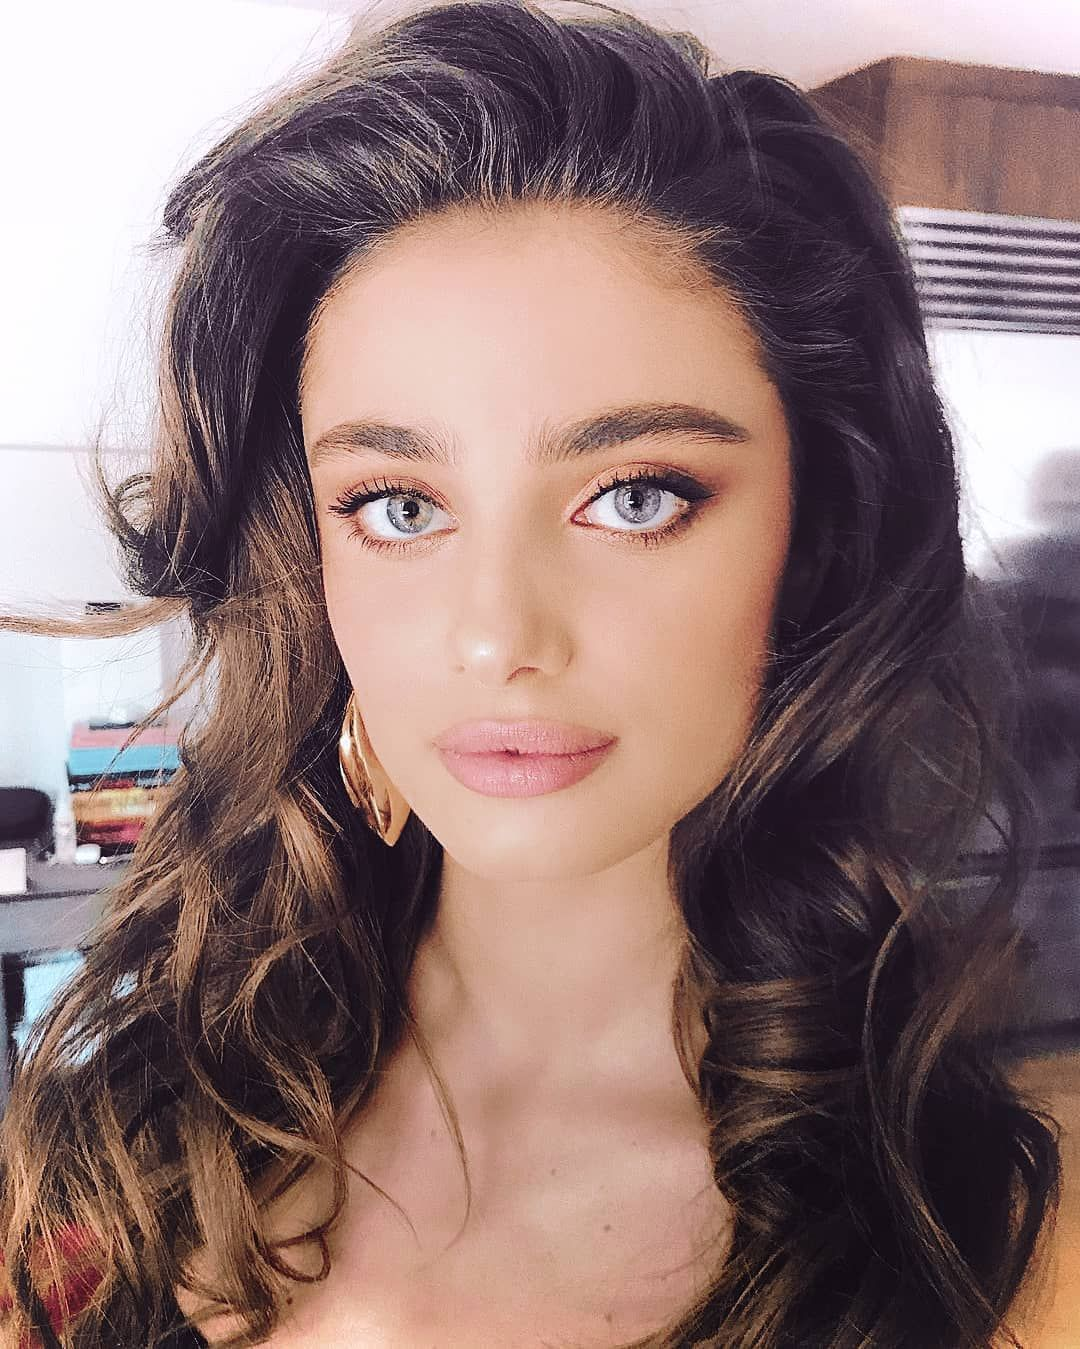 Anemona Niculescu taylorhill how can someone be this beautiful | iubitele mele